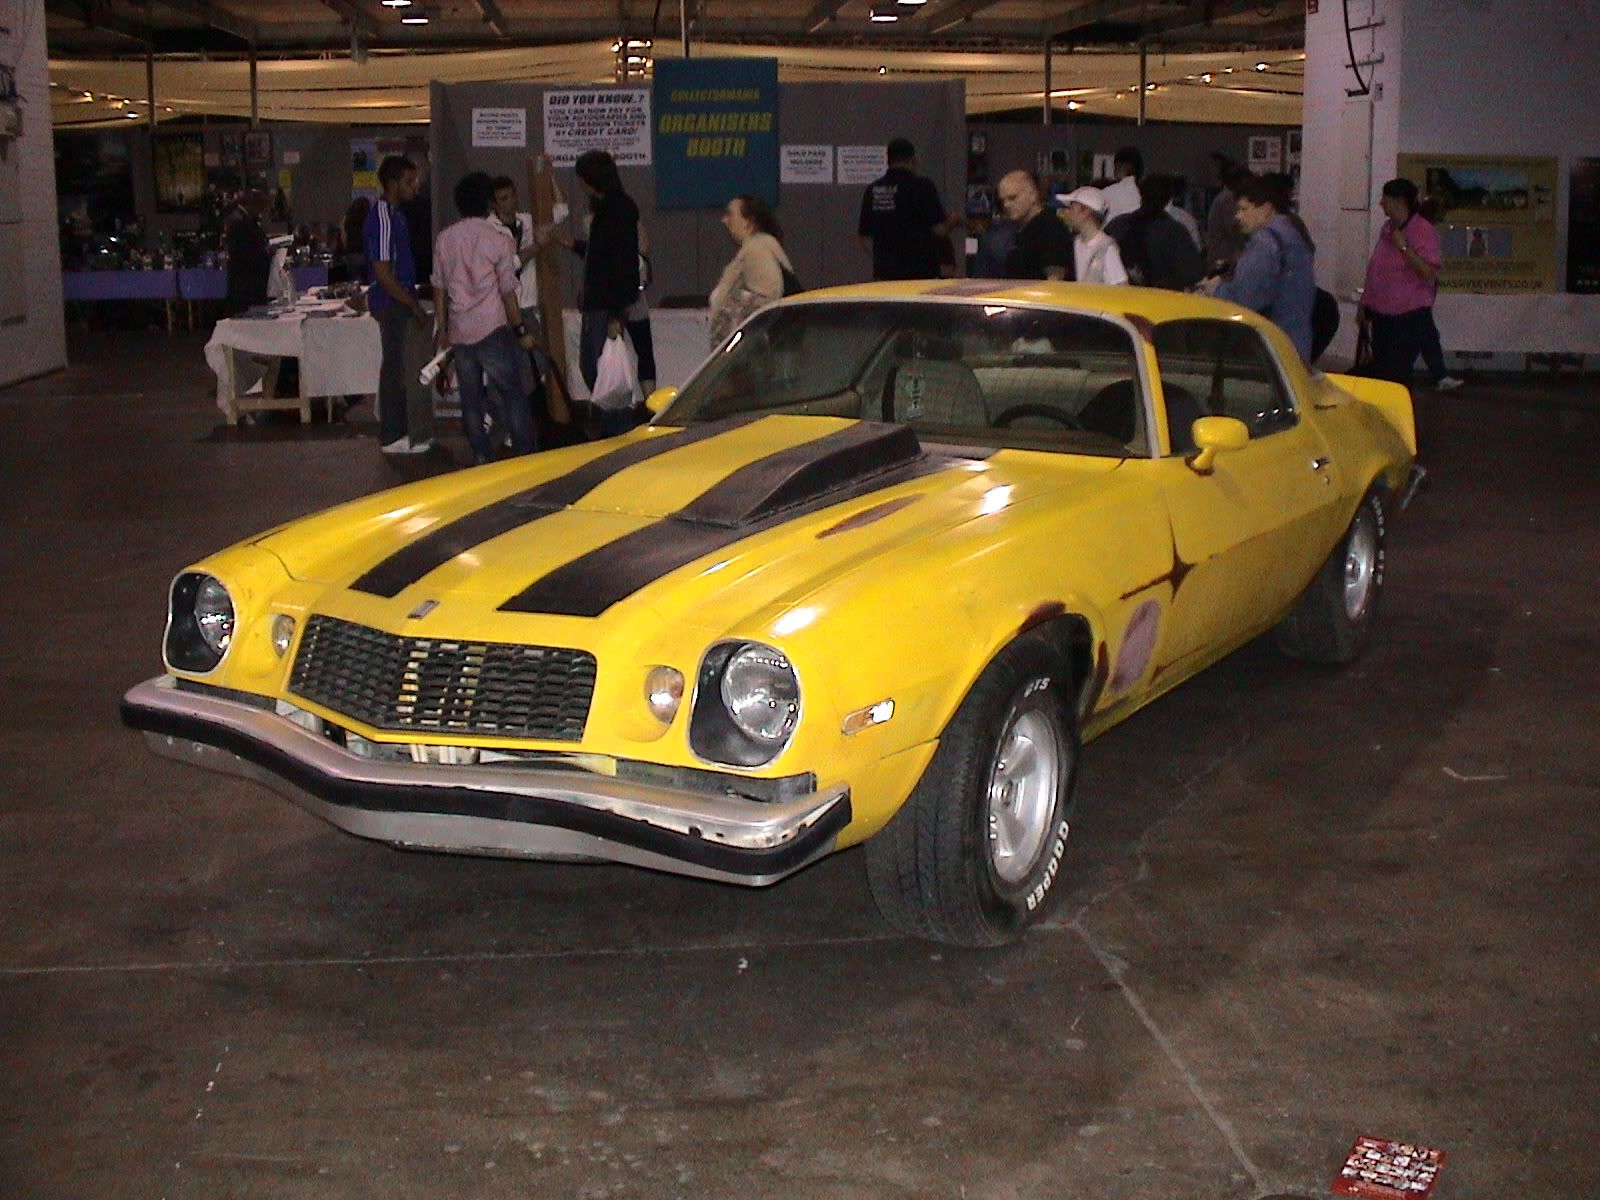 Transformers Bumble Bee - Old 1970 Camaro | CARS OF THE STARS ...